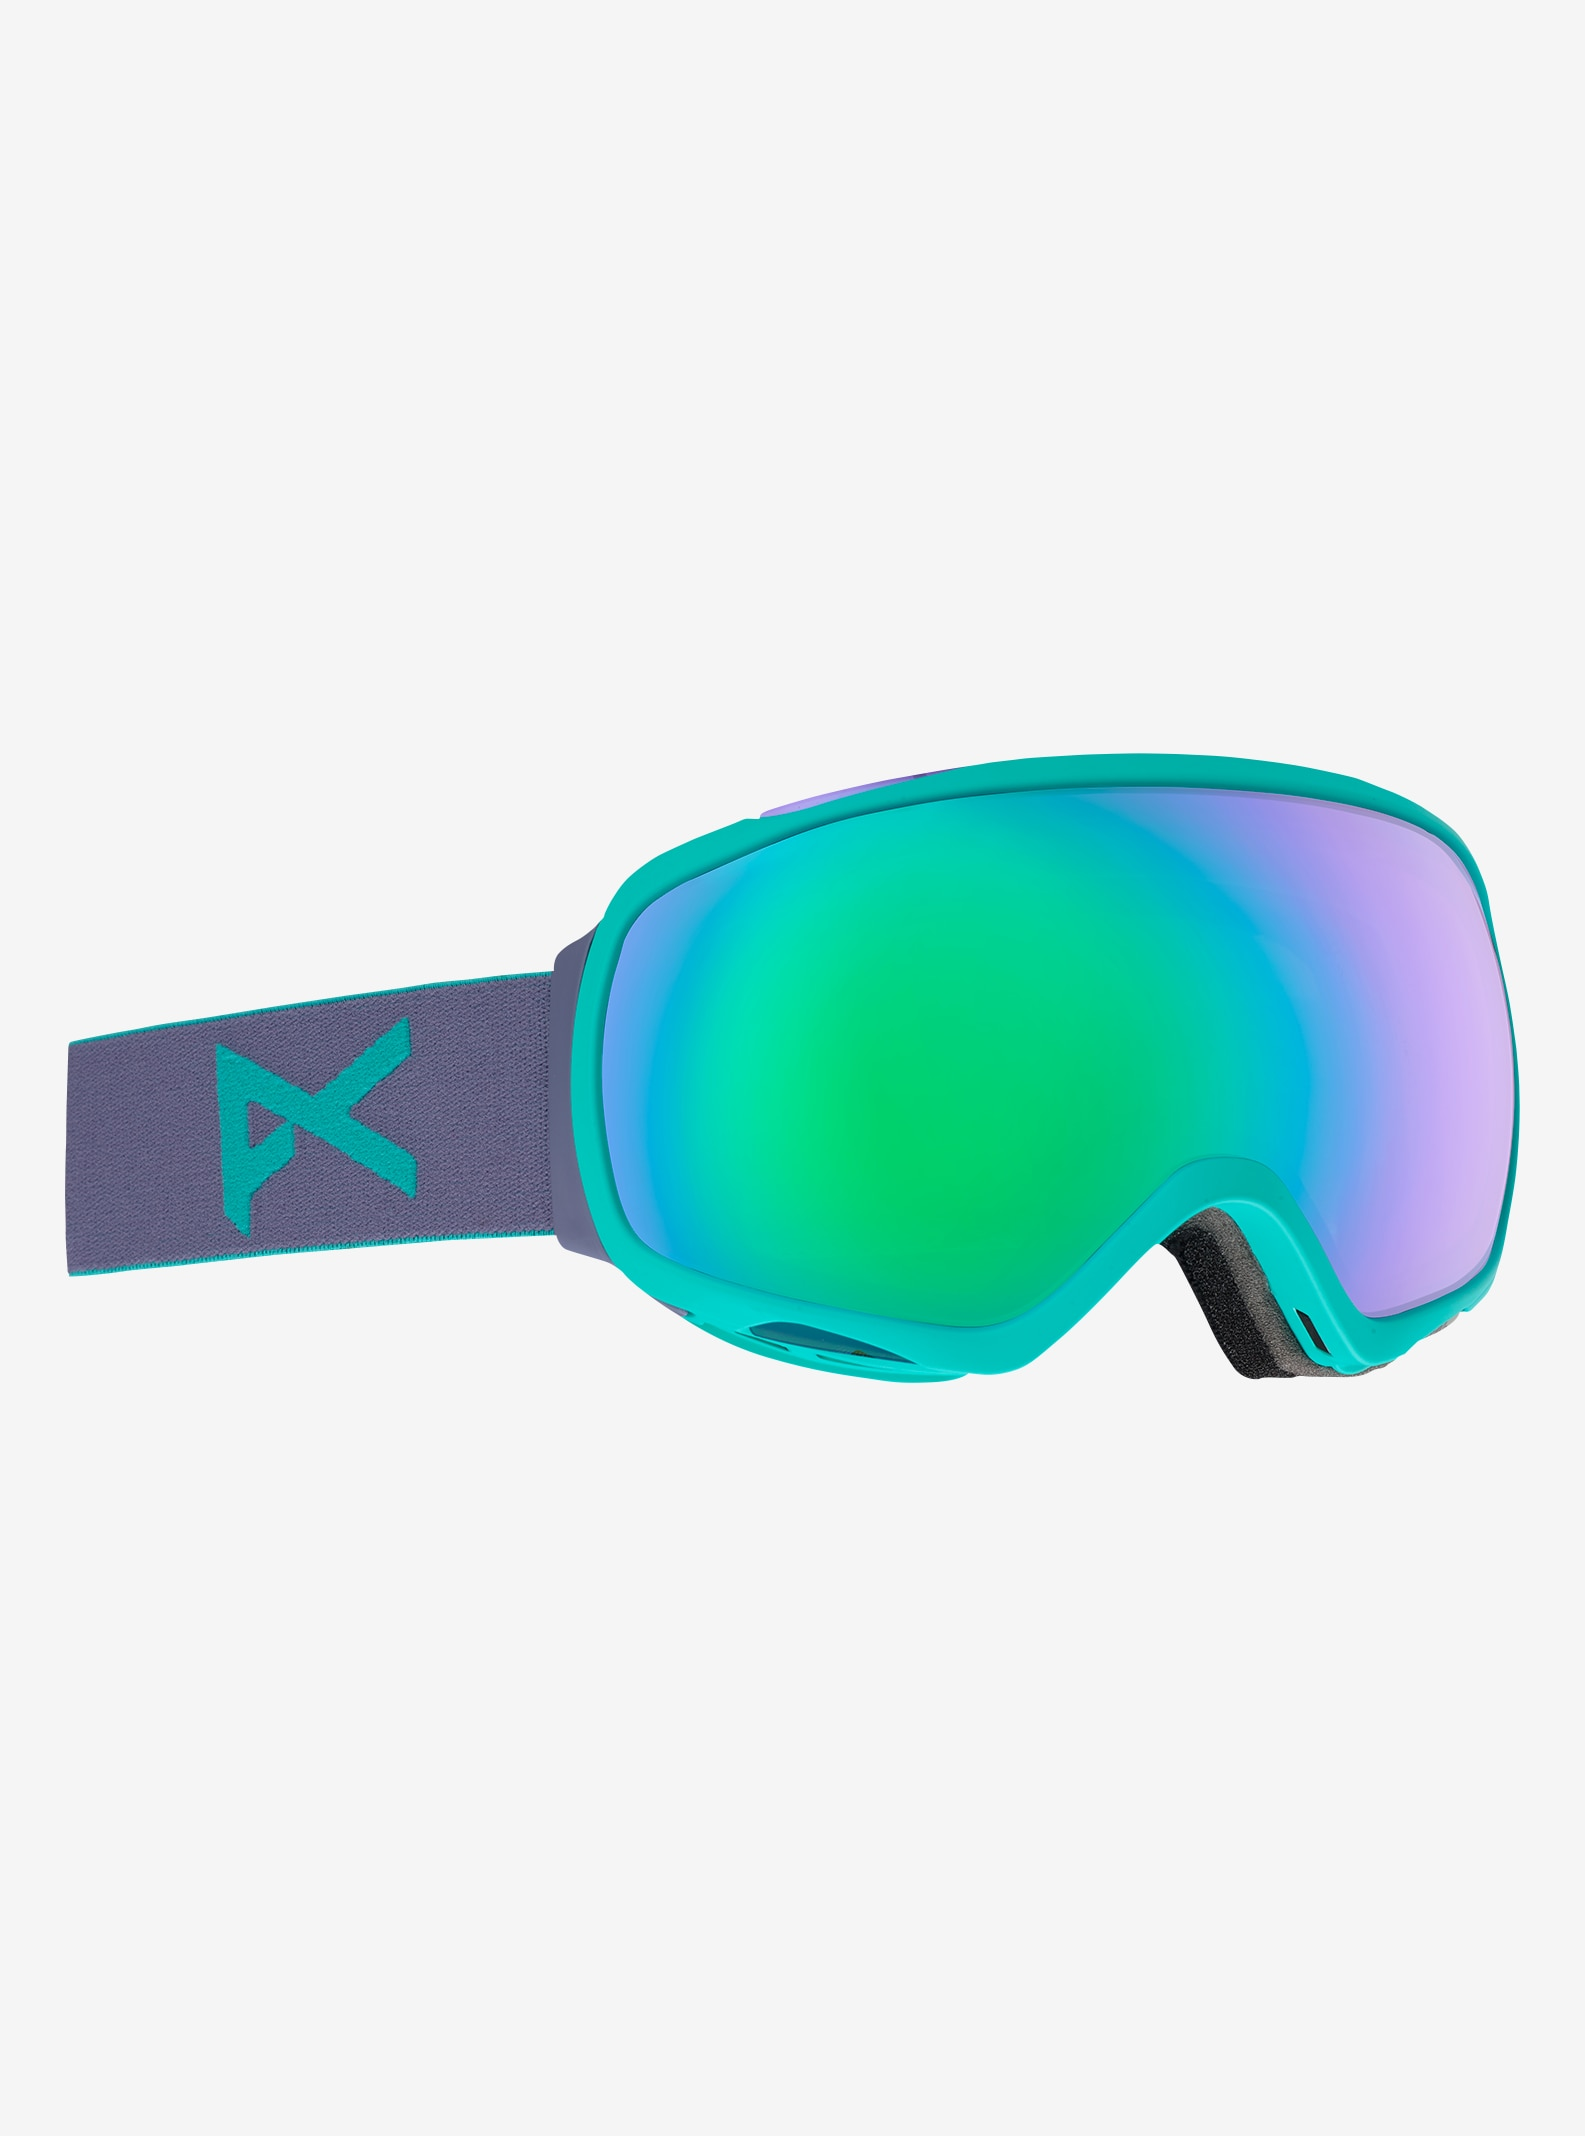 Women's Anon Tempest Goggle shown in Frame: Gala Purple, Lens: Green Solex